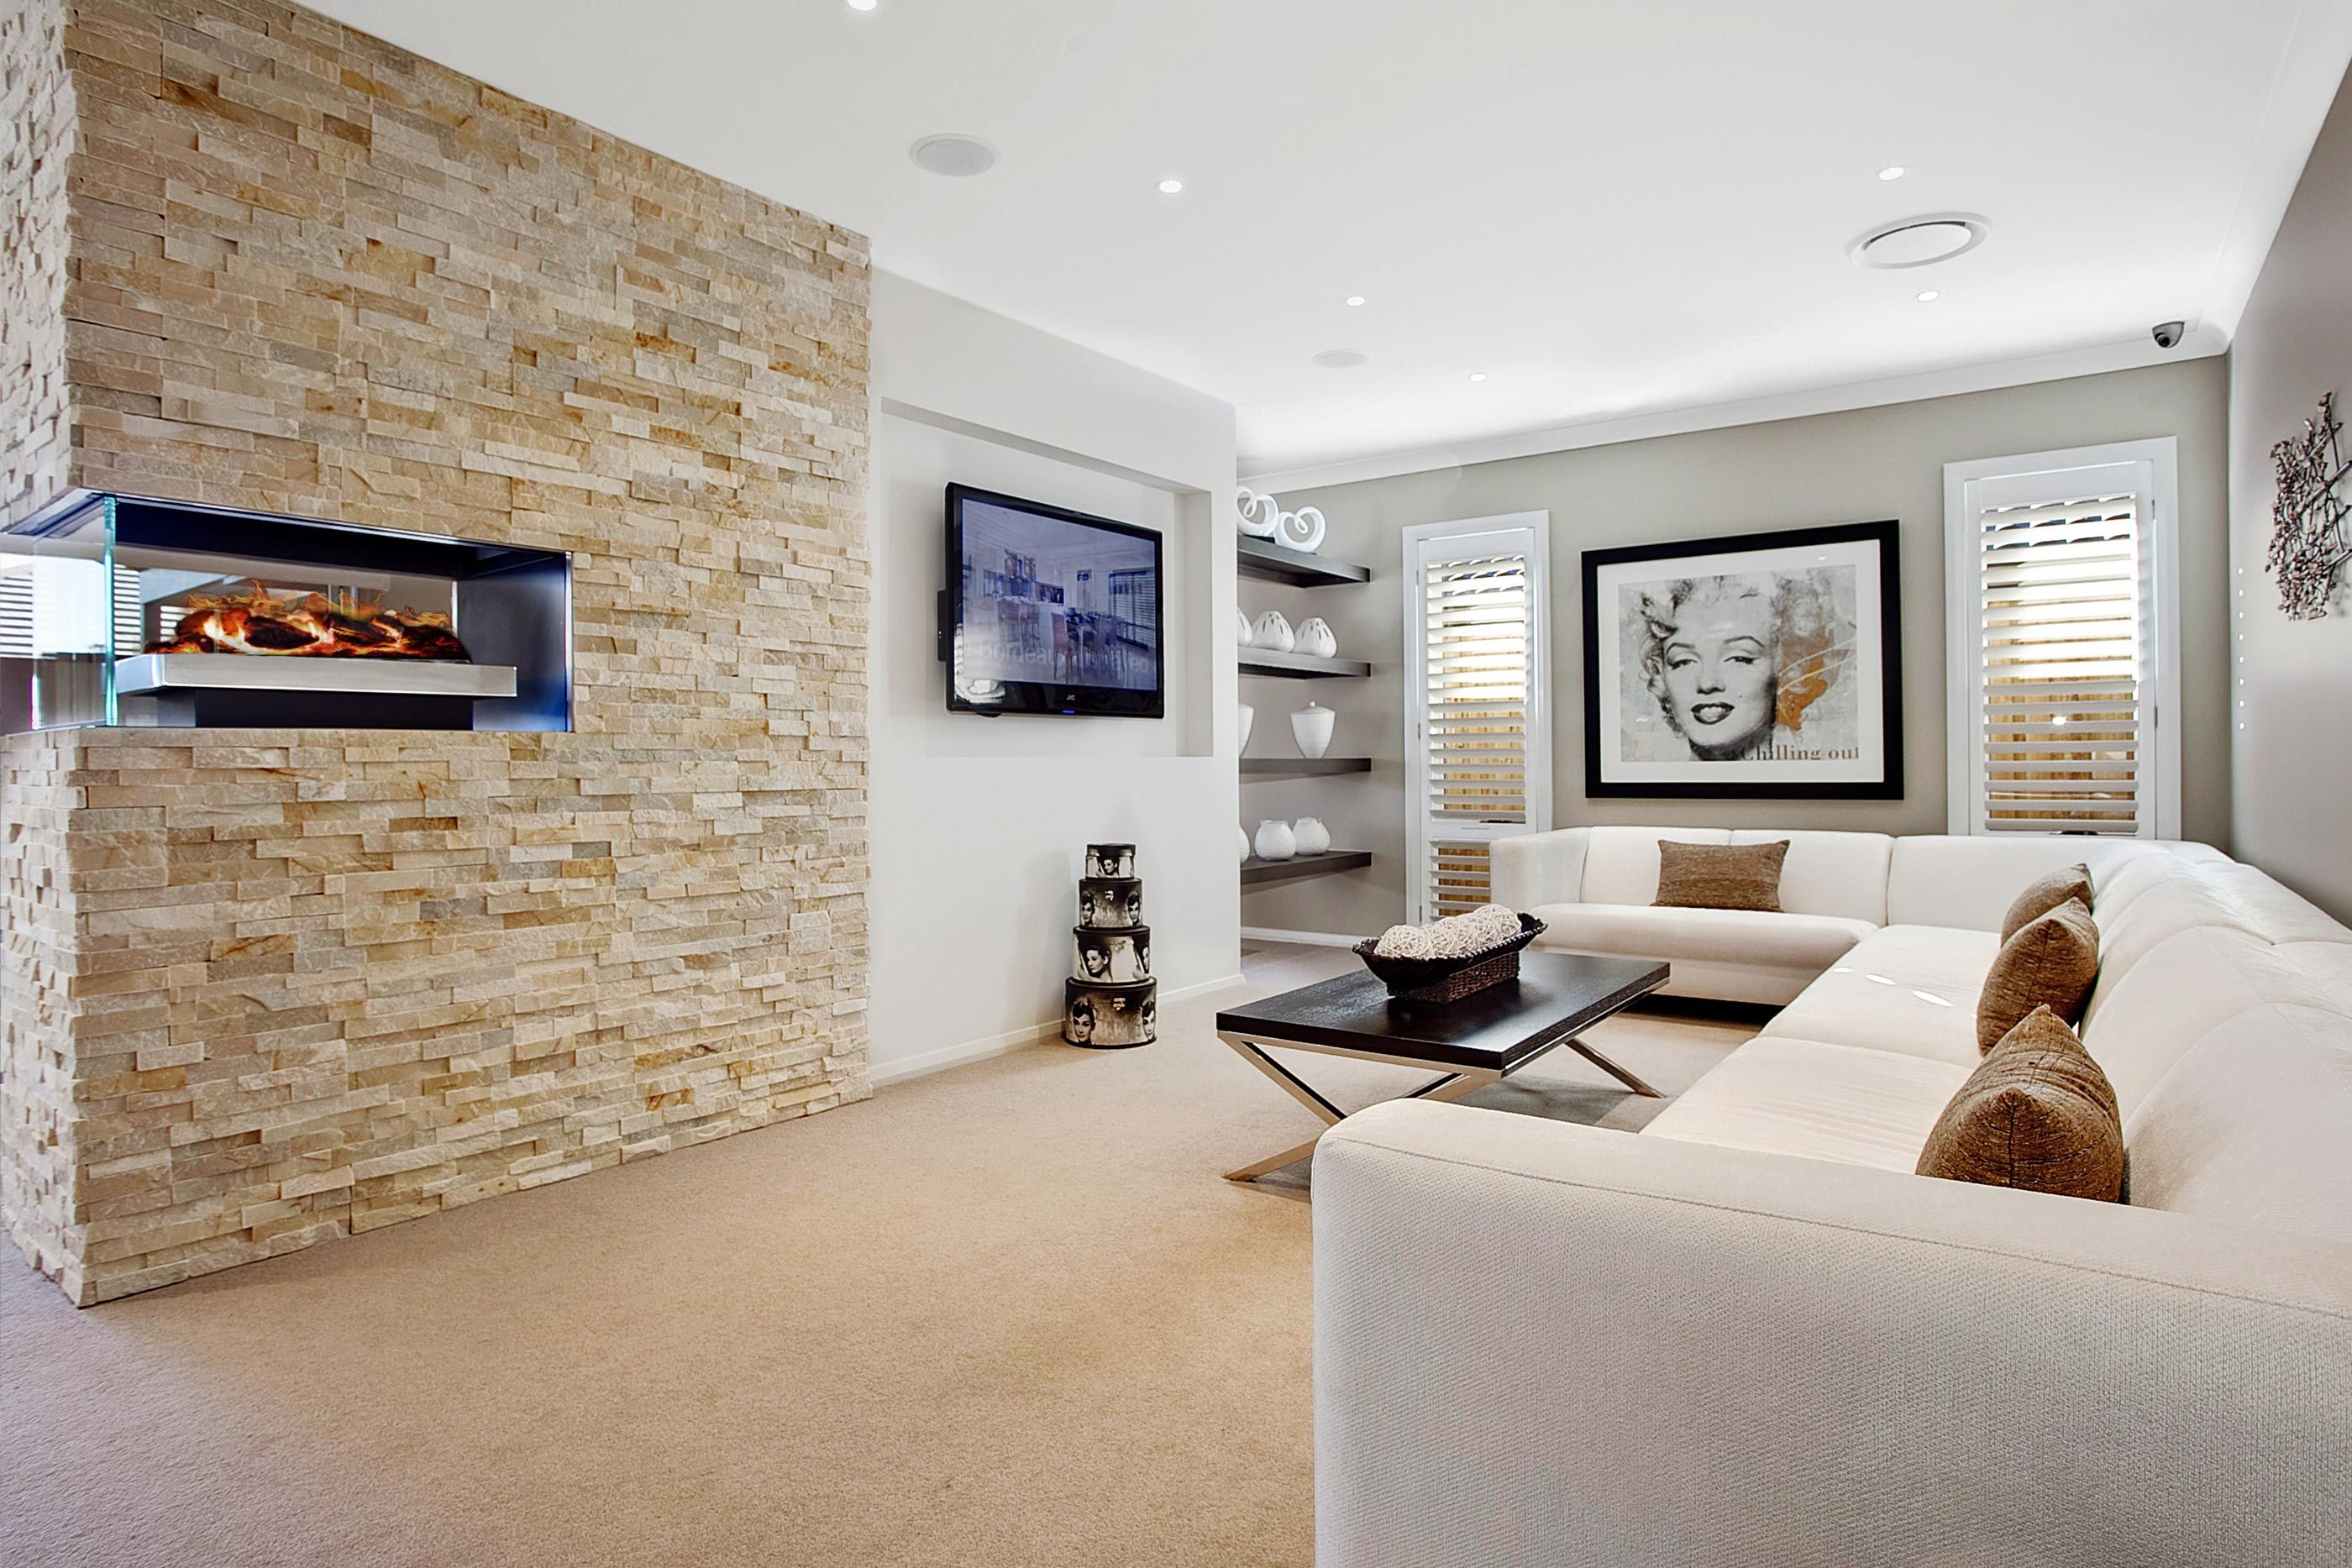 Home Builders Sydney - The Infinity - Modern House designs ...